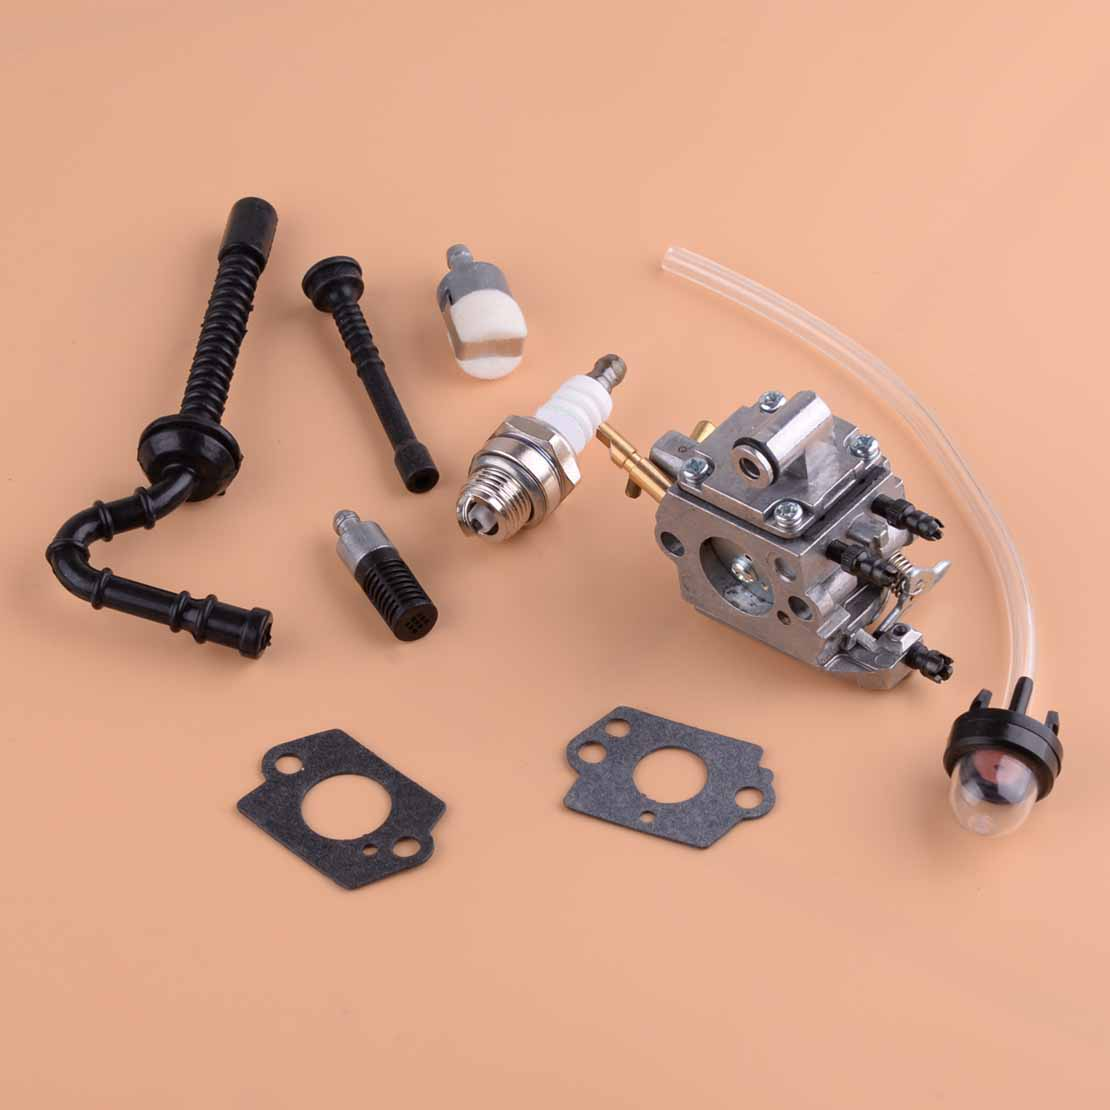 beler 9pcs Carburetor Carb Tune Up Kits 1137 120 0650 Fit for Stihl MS192T MS192TC Chainsaw Zama C1Q S258